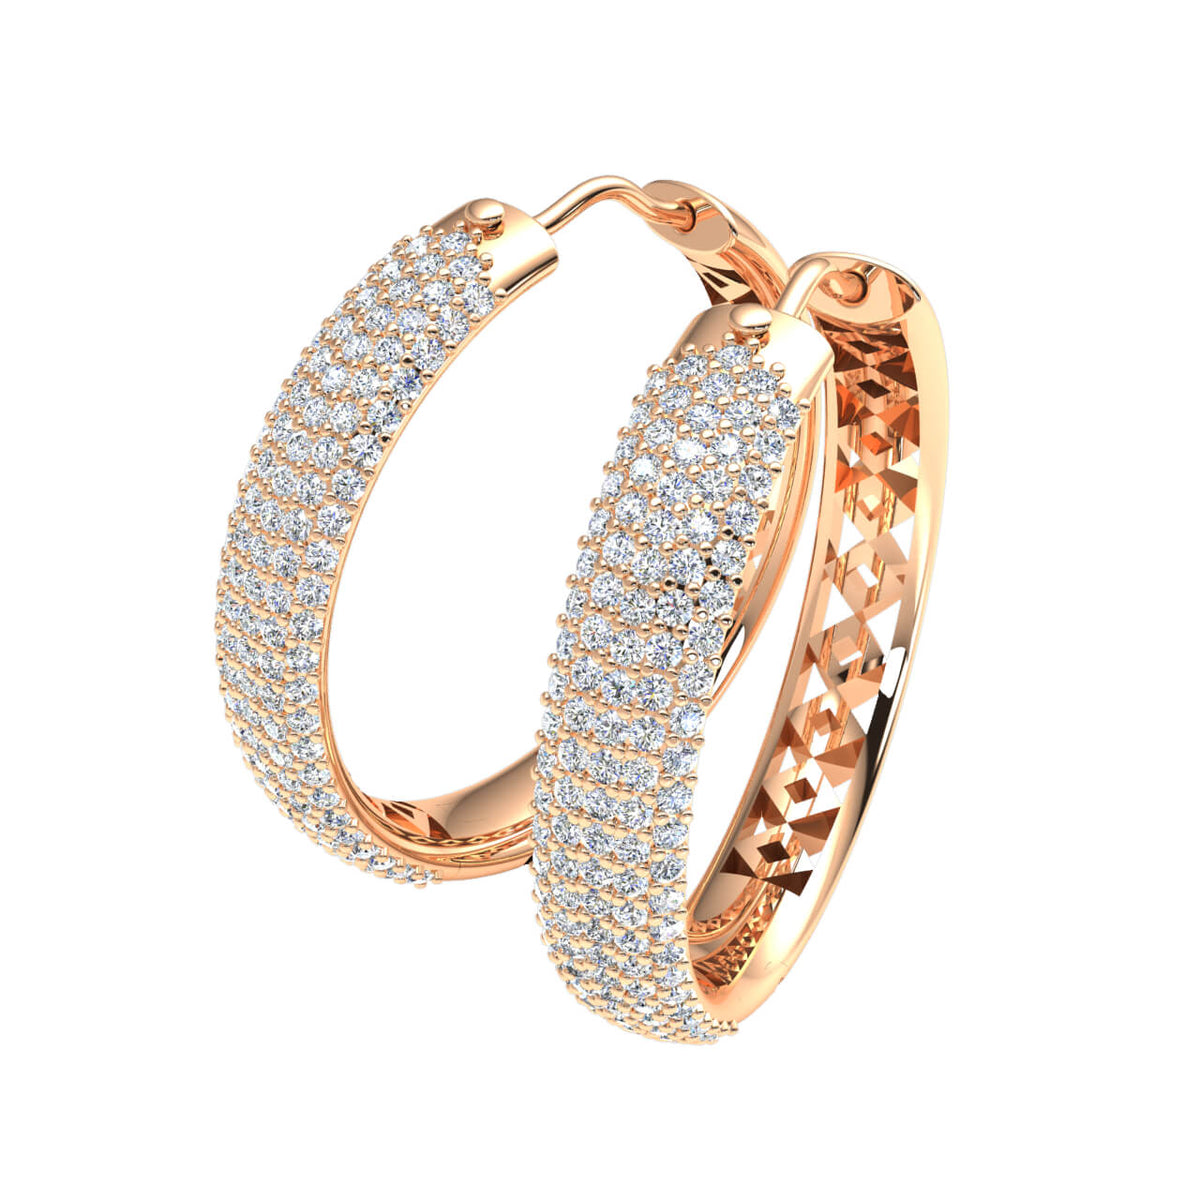 1.20 Ct Round GH SI1 Diamond 5-Row Hinged Unisex Hoop Earrings 14k Gold